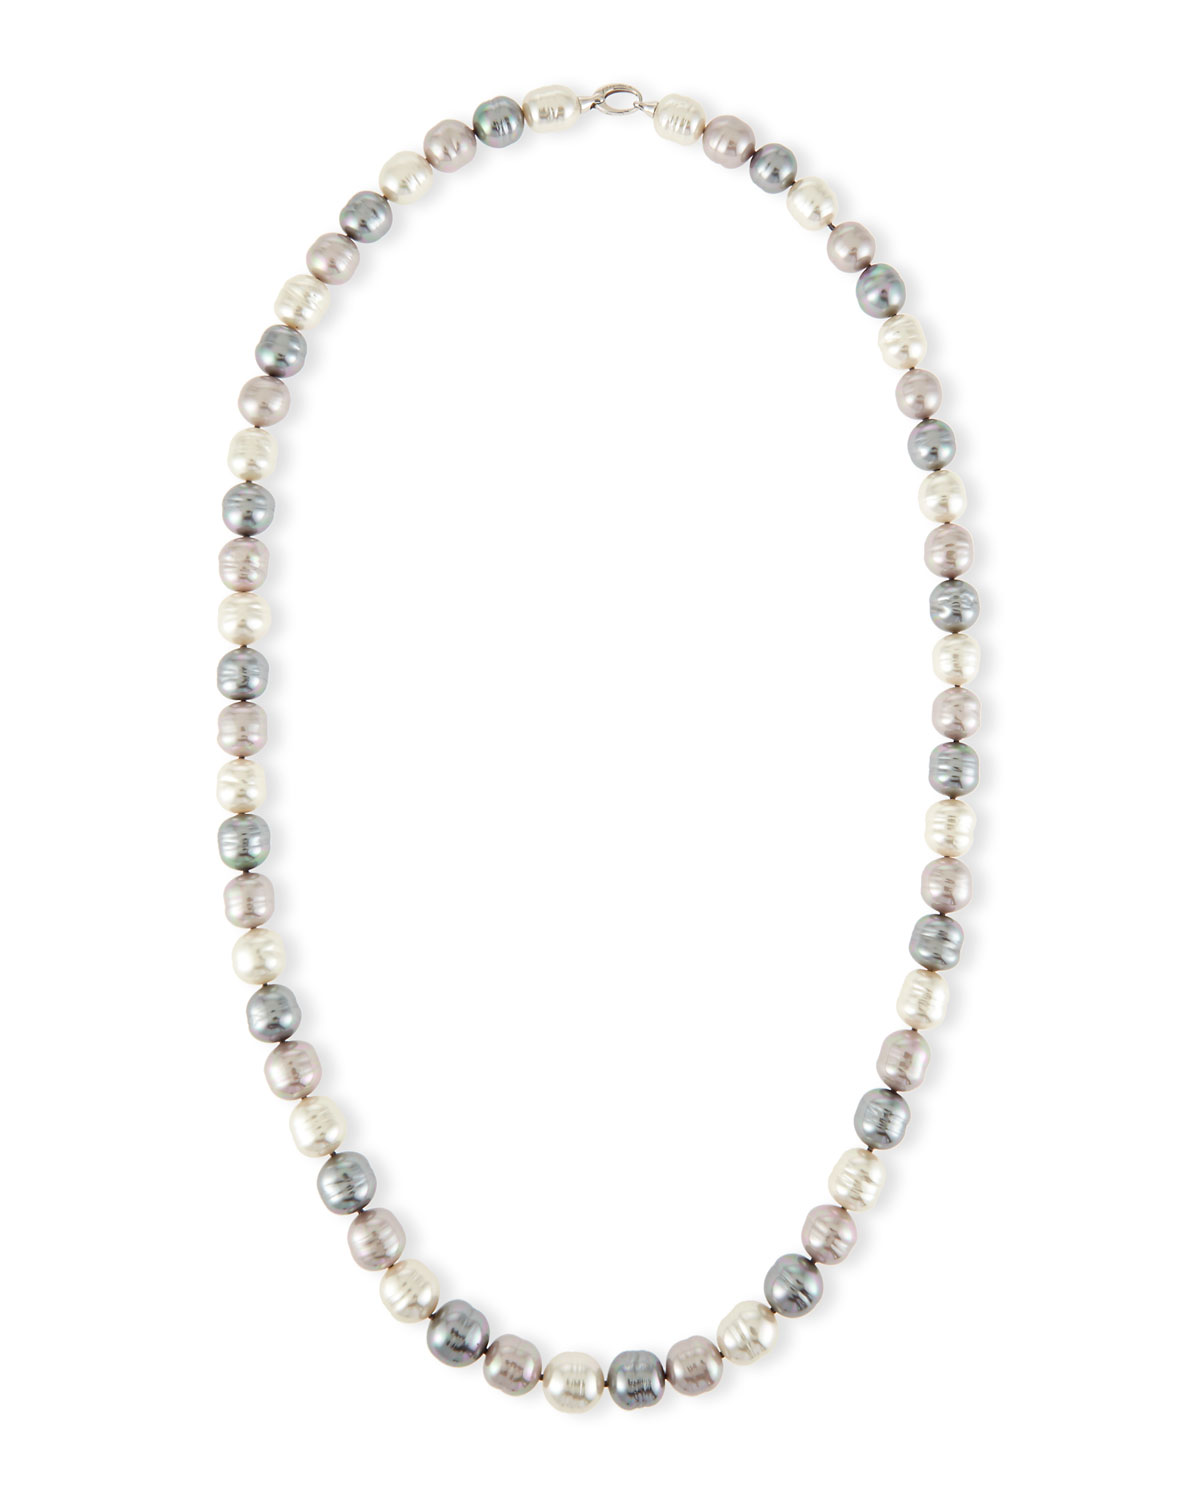 Long Three-Tone Baroque Pearl Necklace, 36